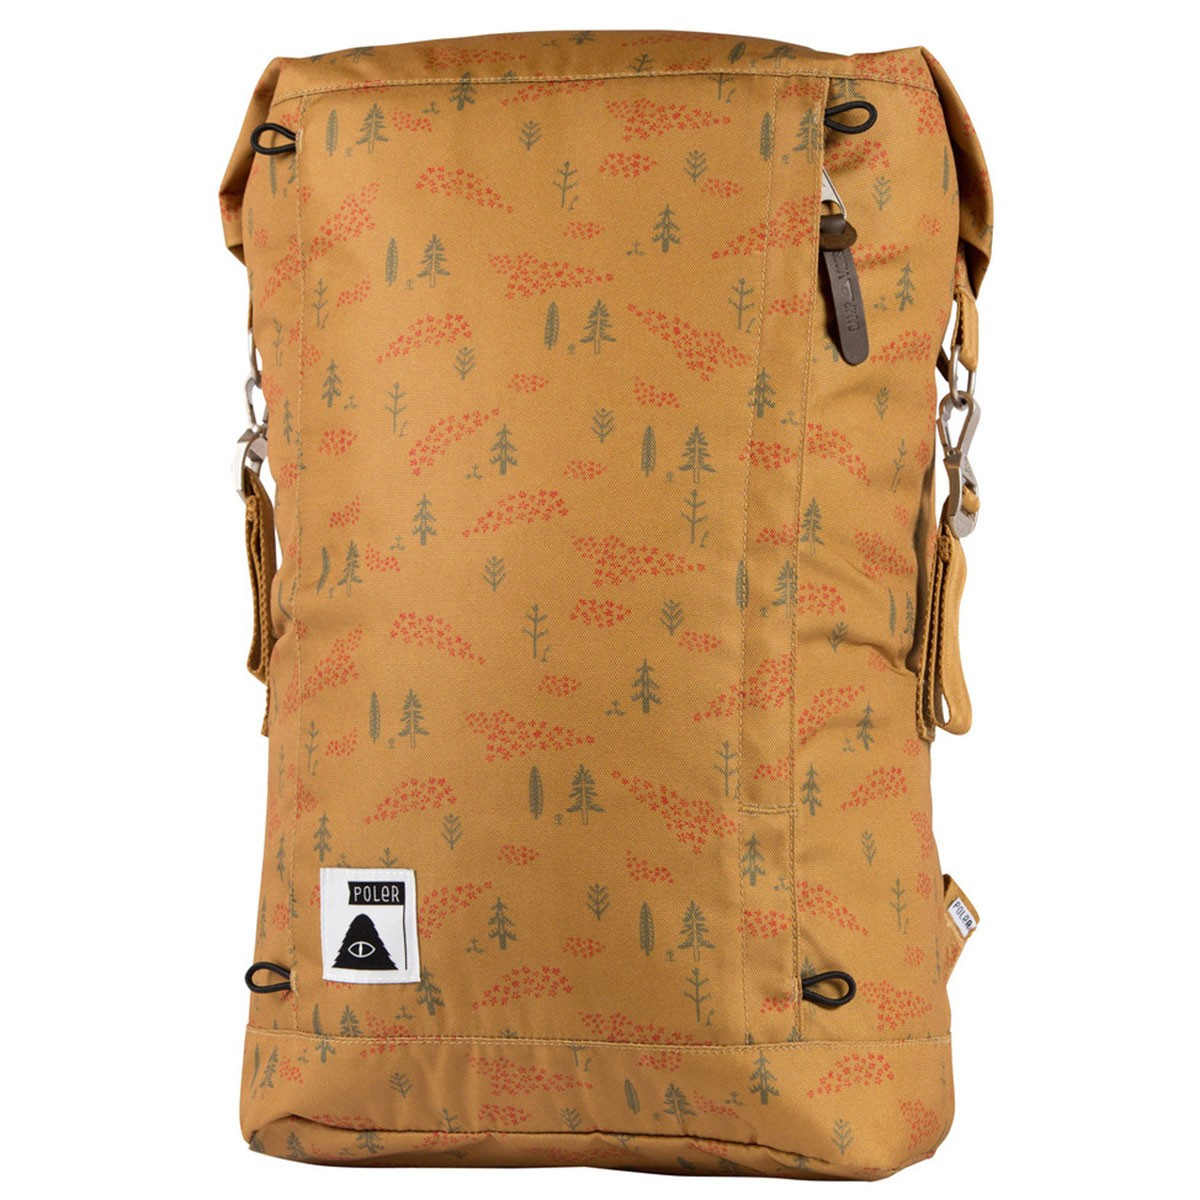 Poler Rolltop Backpack - Almond Forestry Print